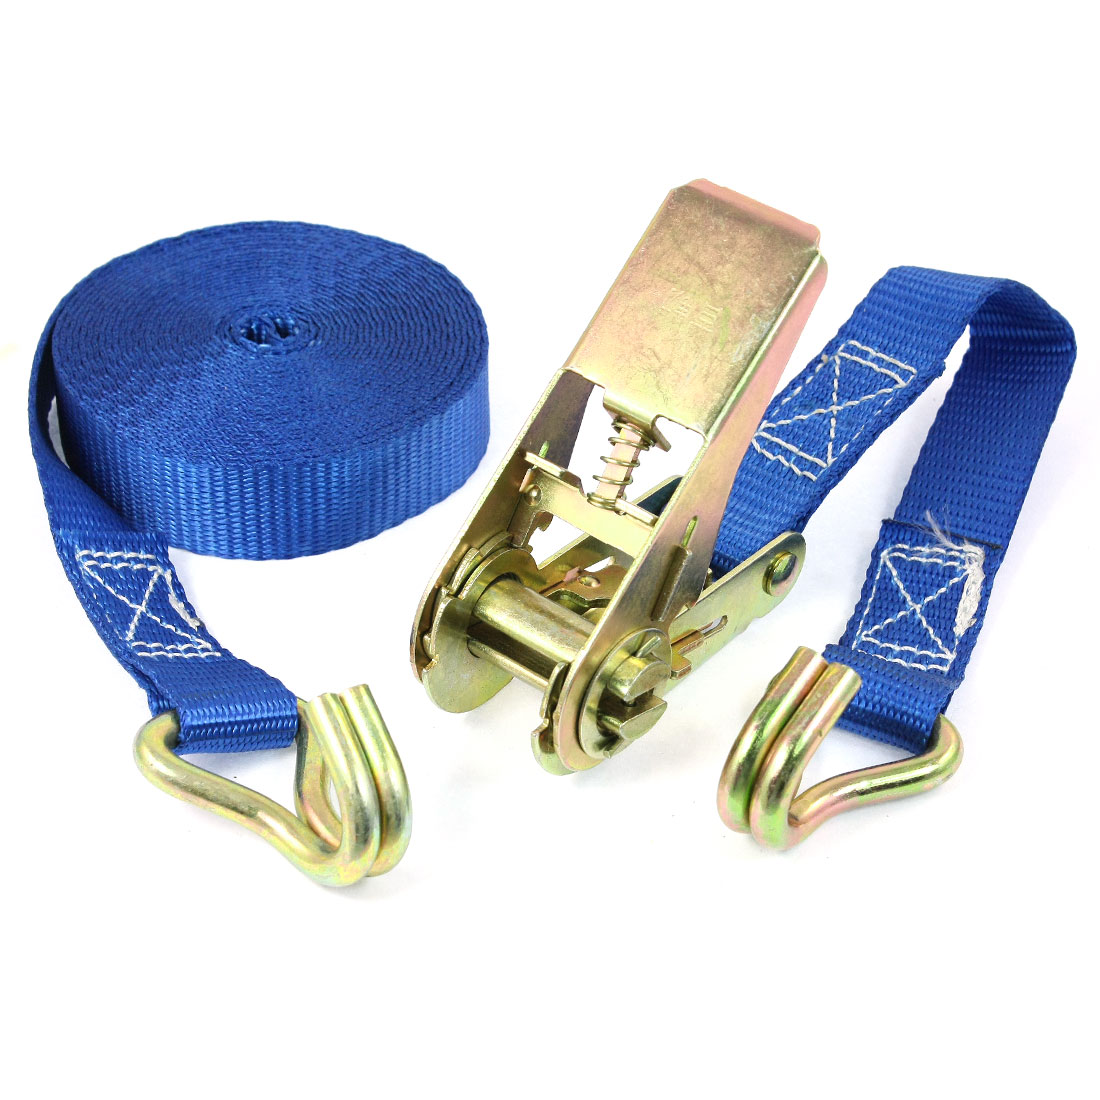 Dual Metal Hooks Cargo Binding Band Ratchet Tie Down Strap 5M 16ft Blue